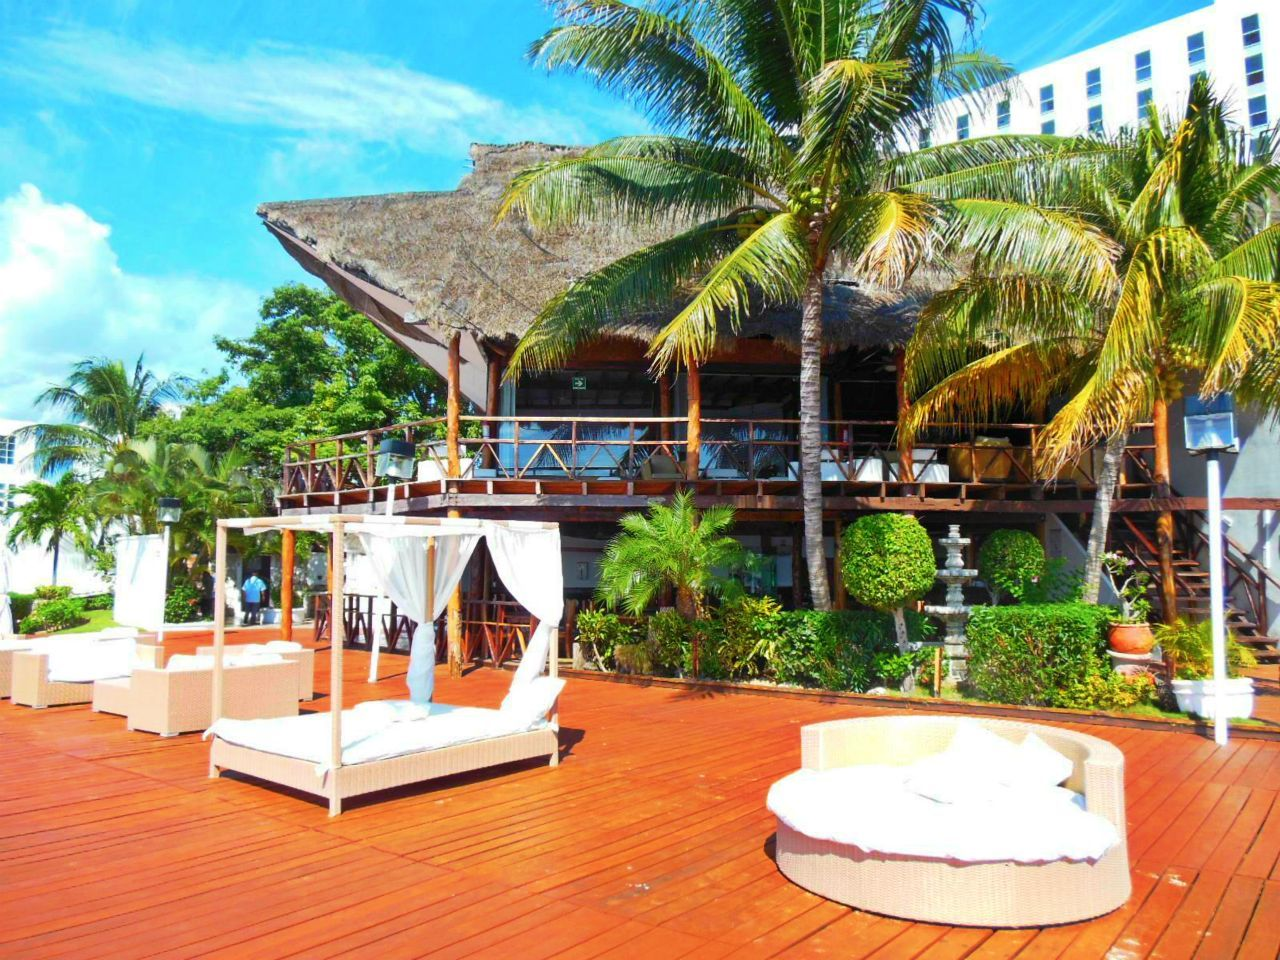 Sunset Marina Resort Yacht Club Is Located In The Heart Of